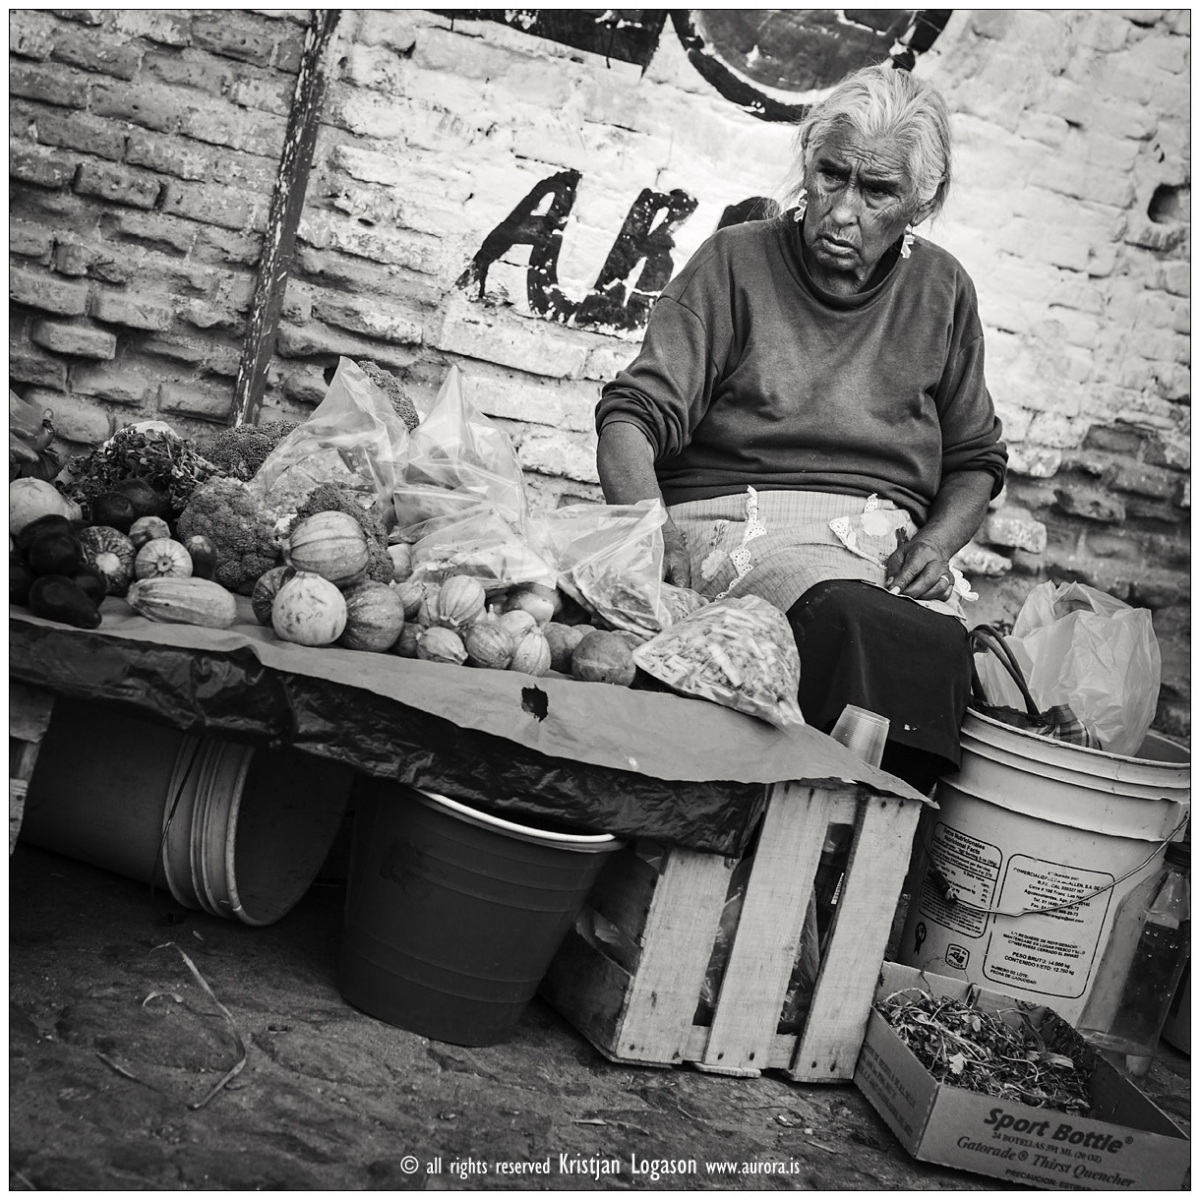 Street vendor selling vegetable and fruits